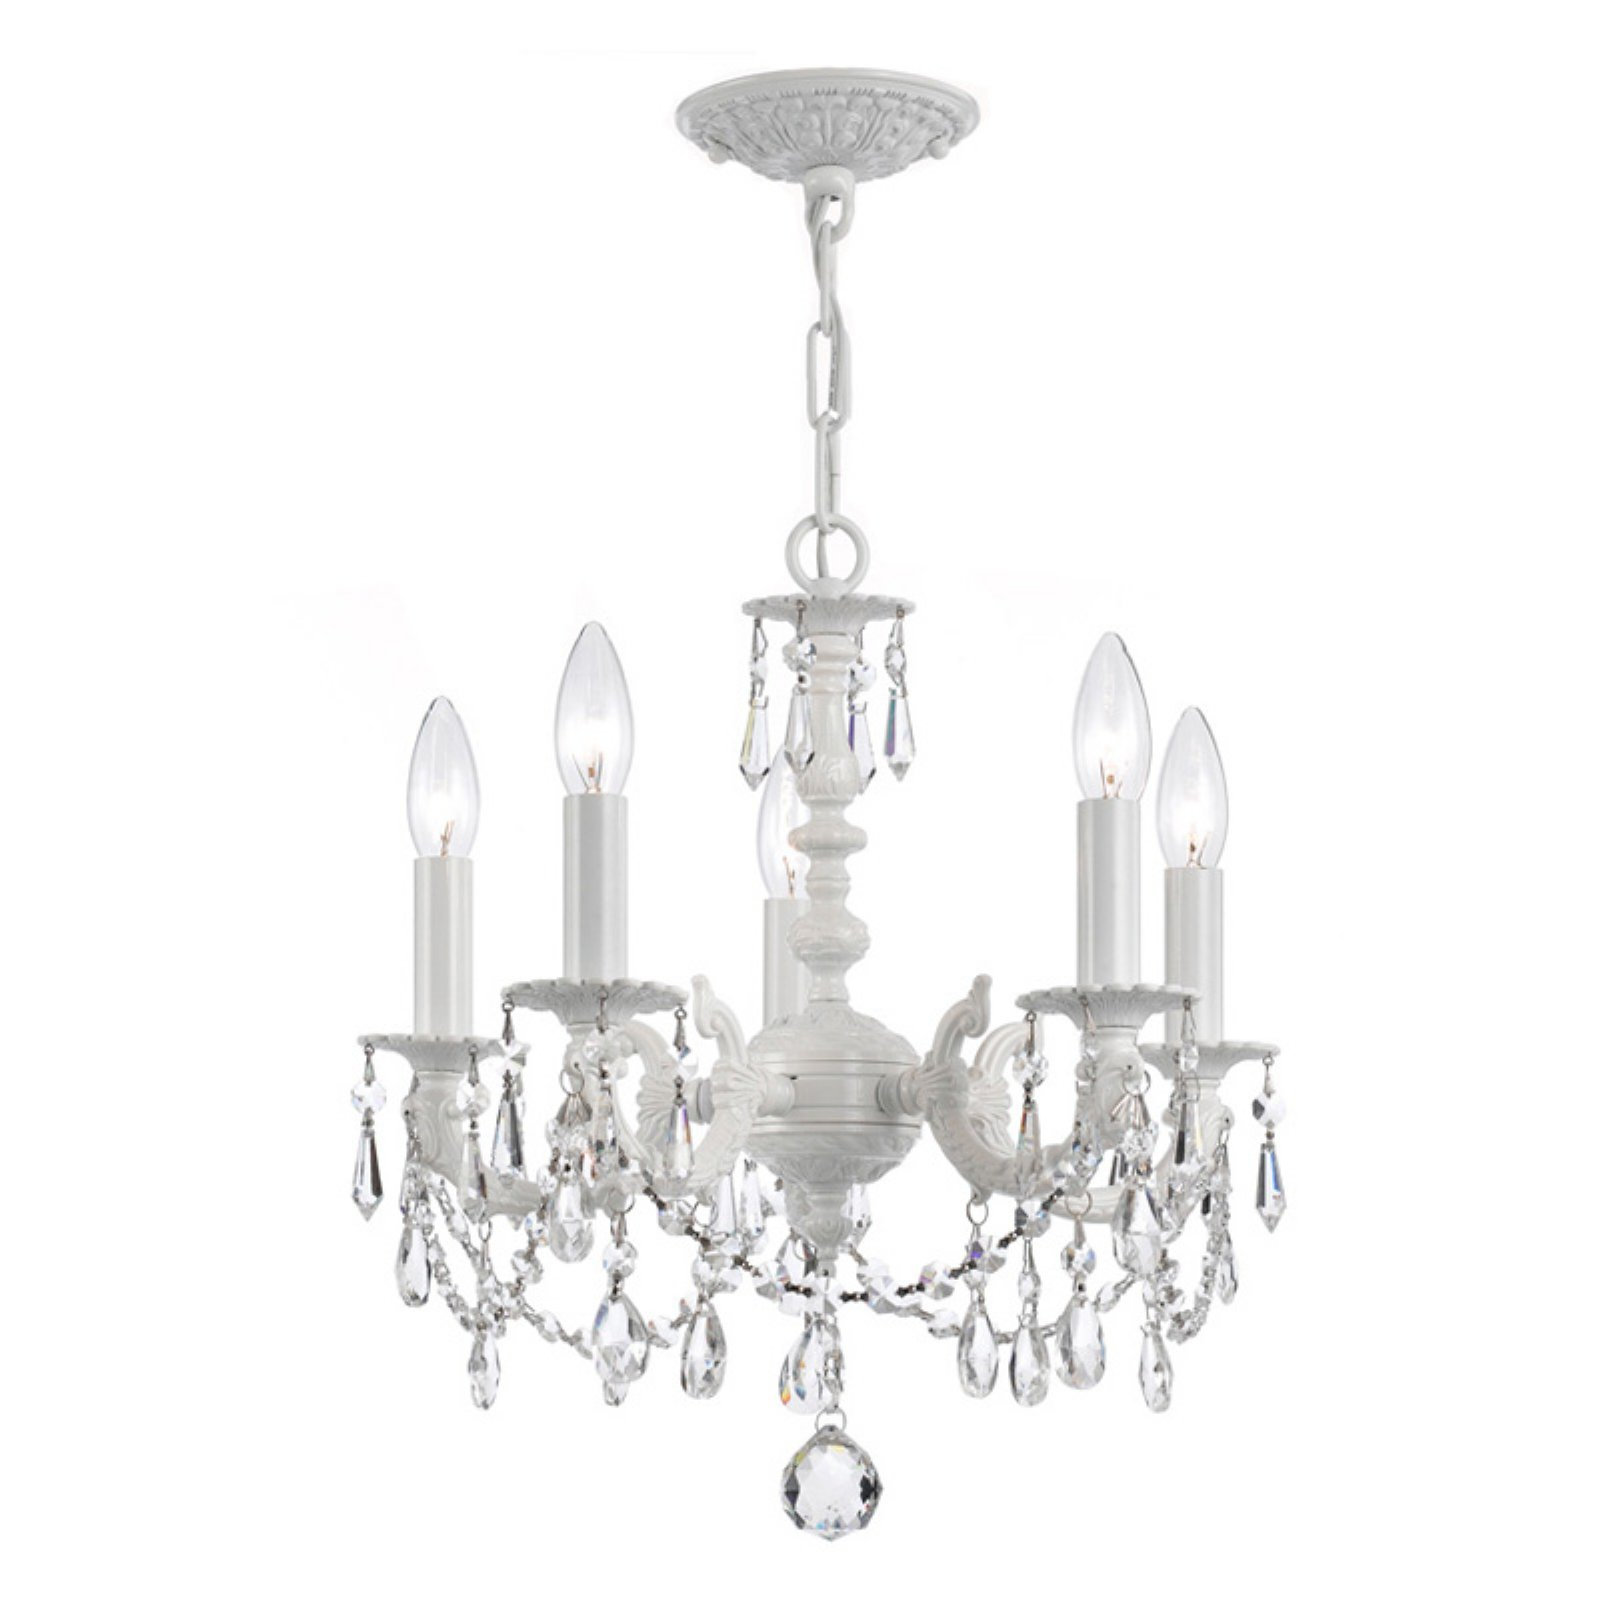 Popular Blanchette 5 Light Candle Style Chandeliers Pertaining To Crystorama Paris Market 5515 Ww Cl Mwp 5 Light Chandelier (View 16 of 20)